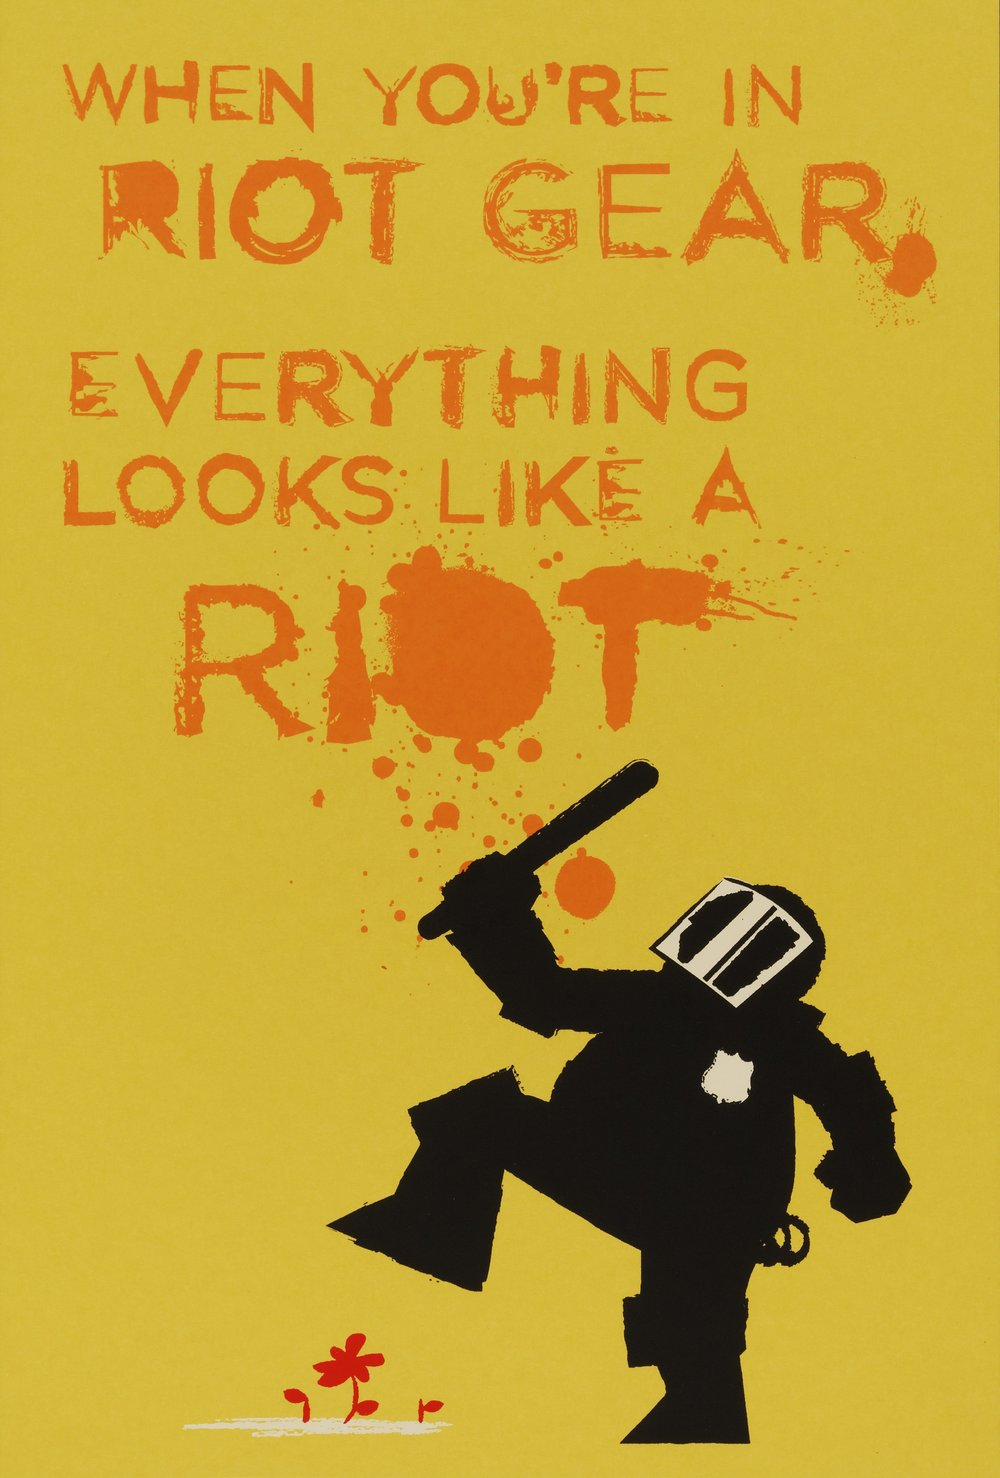 John Emerson, American, born 1973   When in Riot Gear, from the Occuprint Sponsor Portfolio   2012 Screenprint on French paper 18/100 Sheet: 18 1/8 x 12 1/16 in. (46 x 30.7 cm)   Hood Museum of Art, Dartmouth College: Purchased through the Contemporary Art Fund ; 2012.38.16  ©  John Emerson